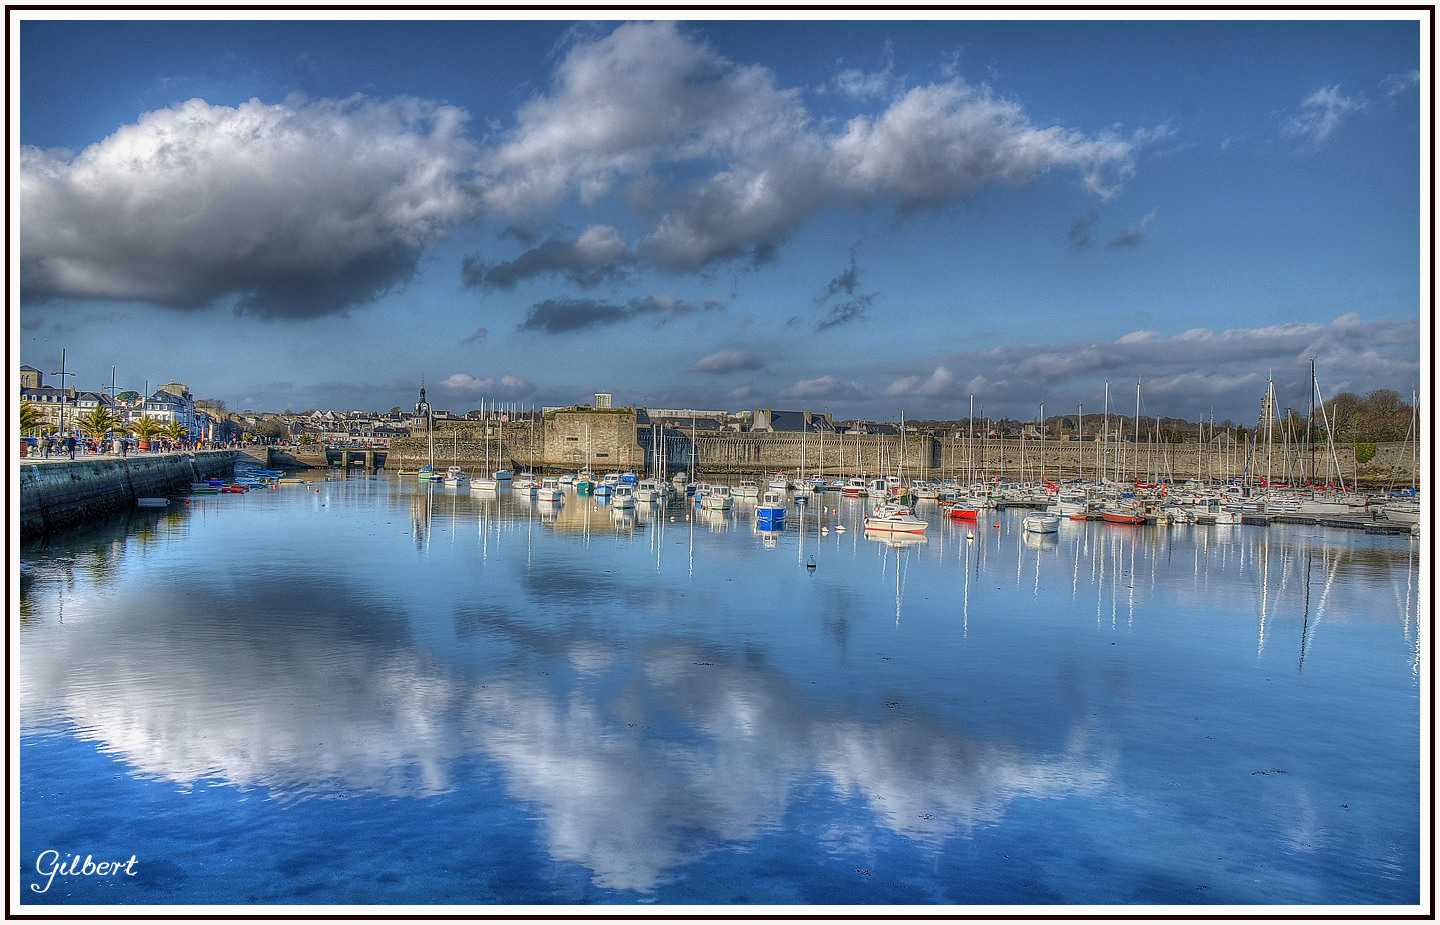 ville-close-port-de-plaisance-concarneau